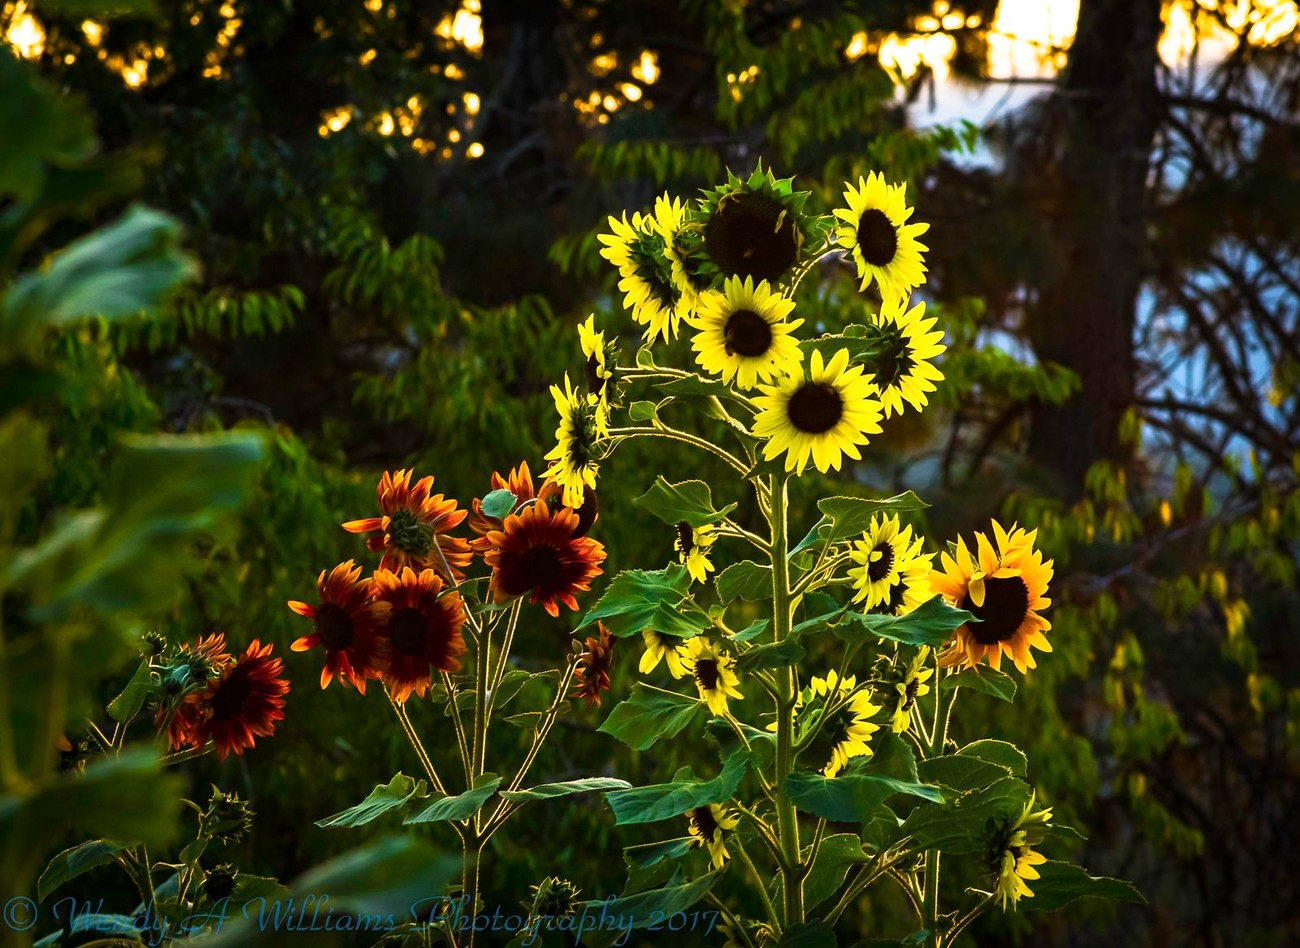 Visiting our local organic farm and catching the last of the sunflowers in our area for 2017 see more of my work at wendyawilliamsphotography.com